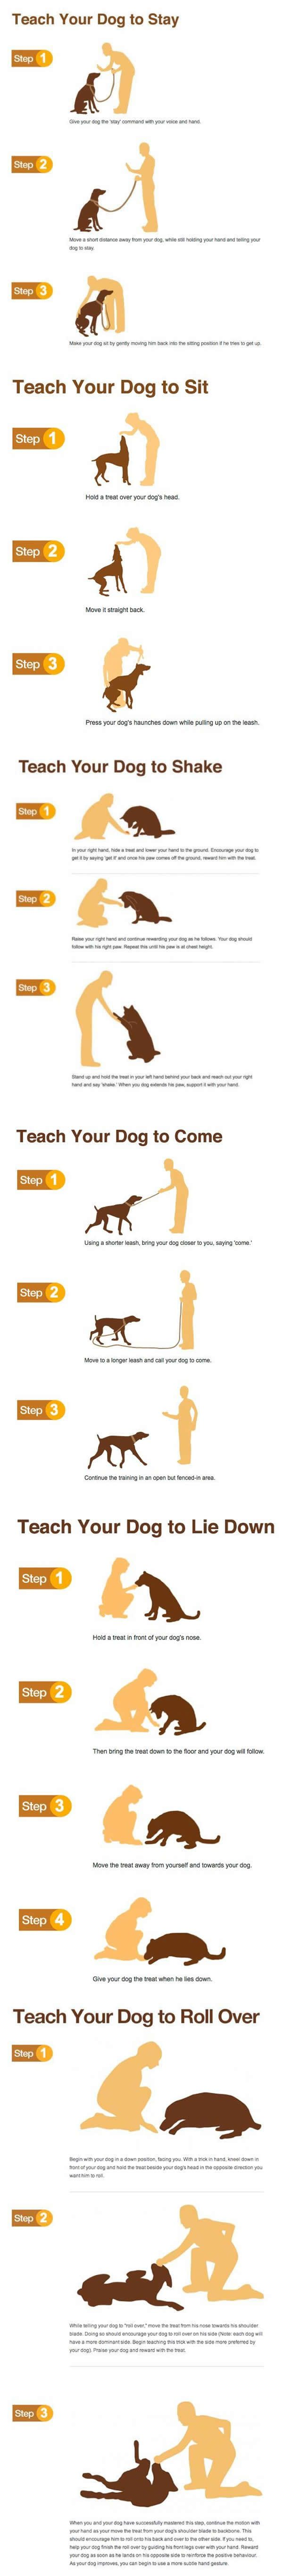 Teach your dog some tricks